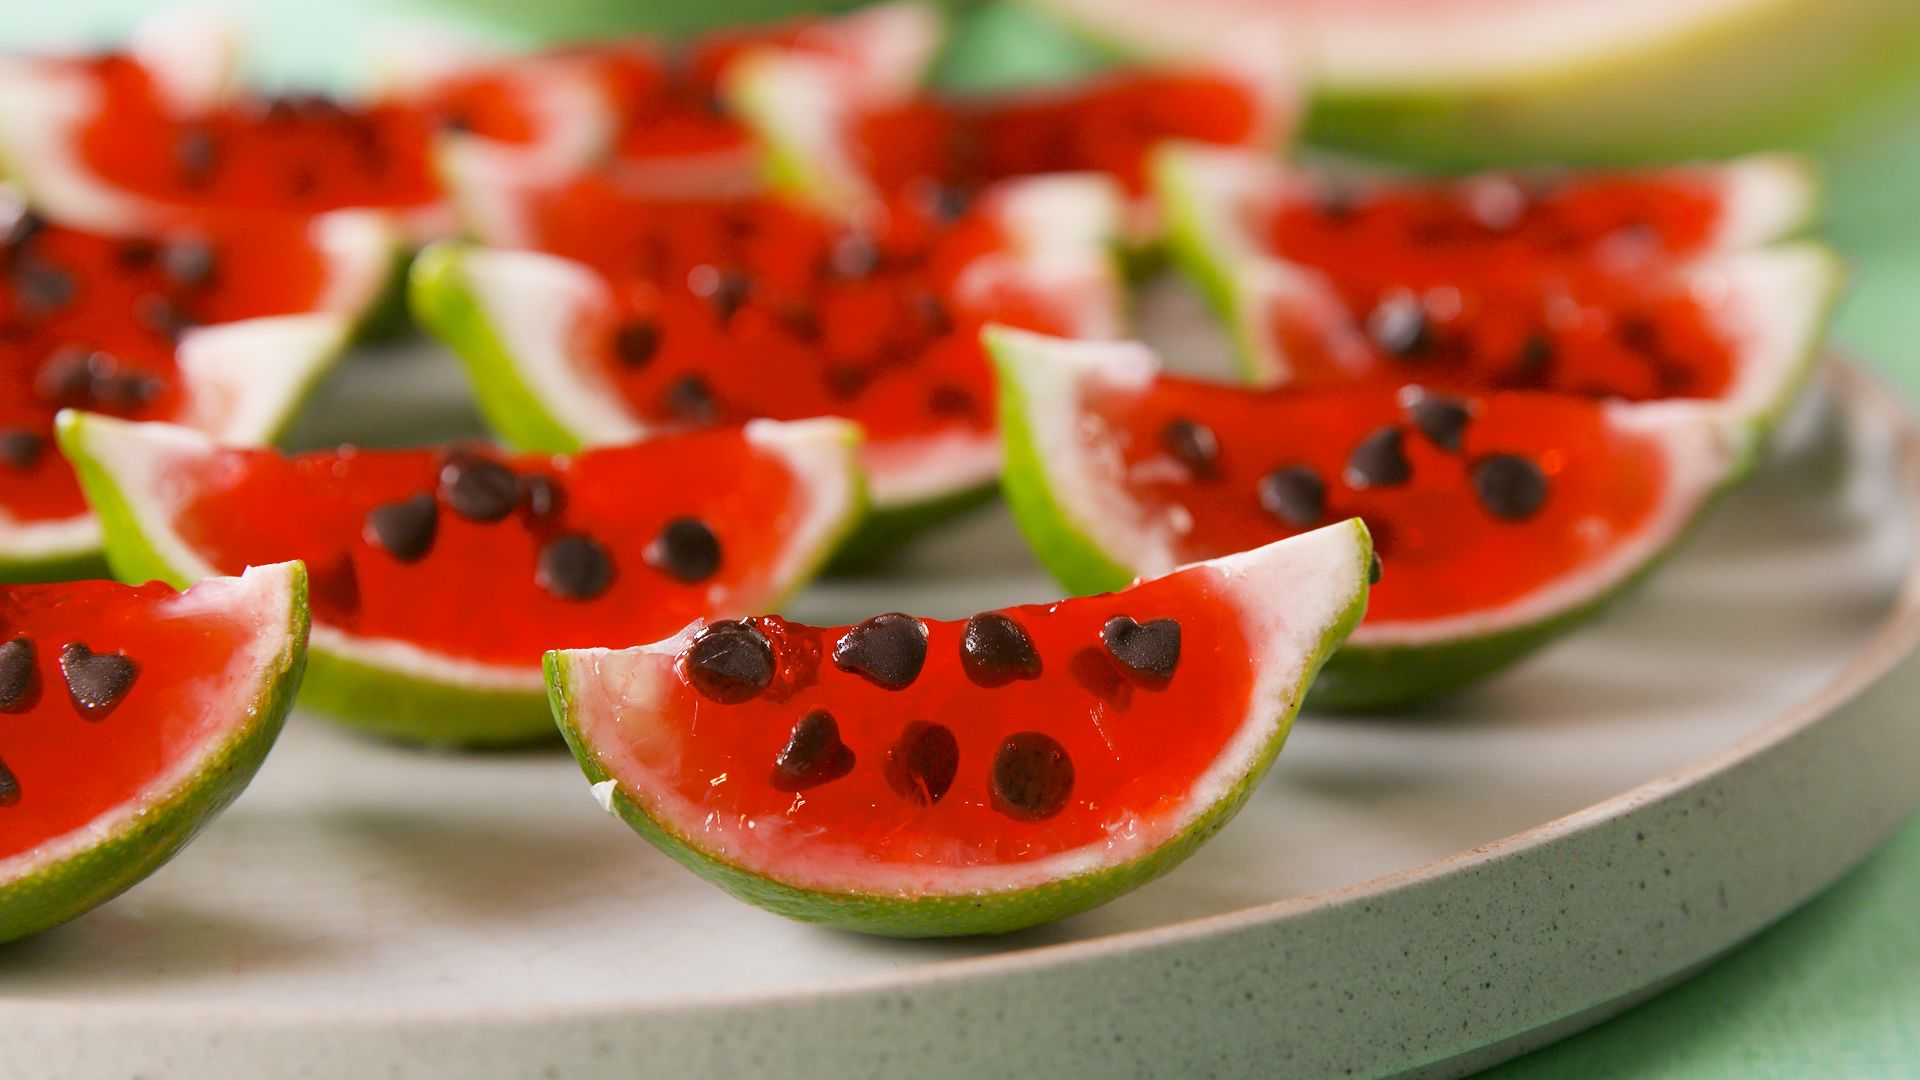 Celebrate Summer With These ADORABLE Watermelon Jell-O Shots